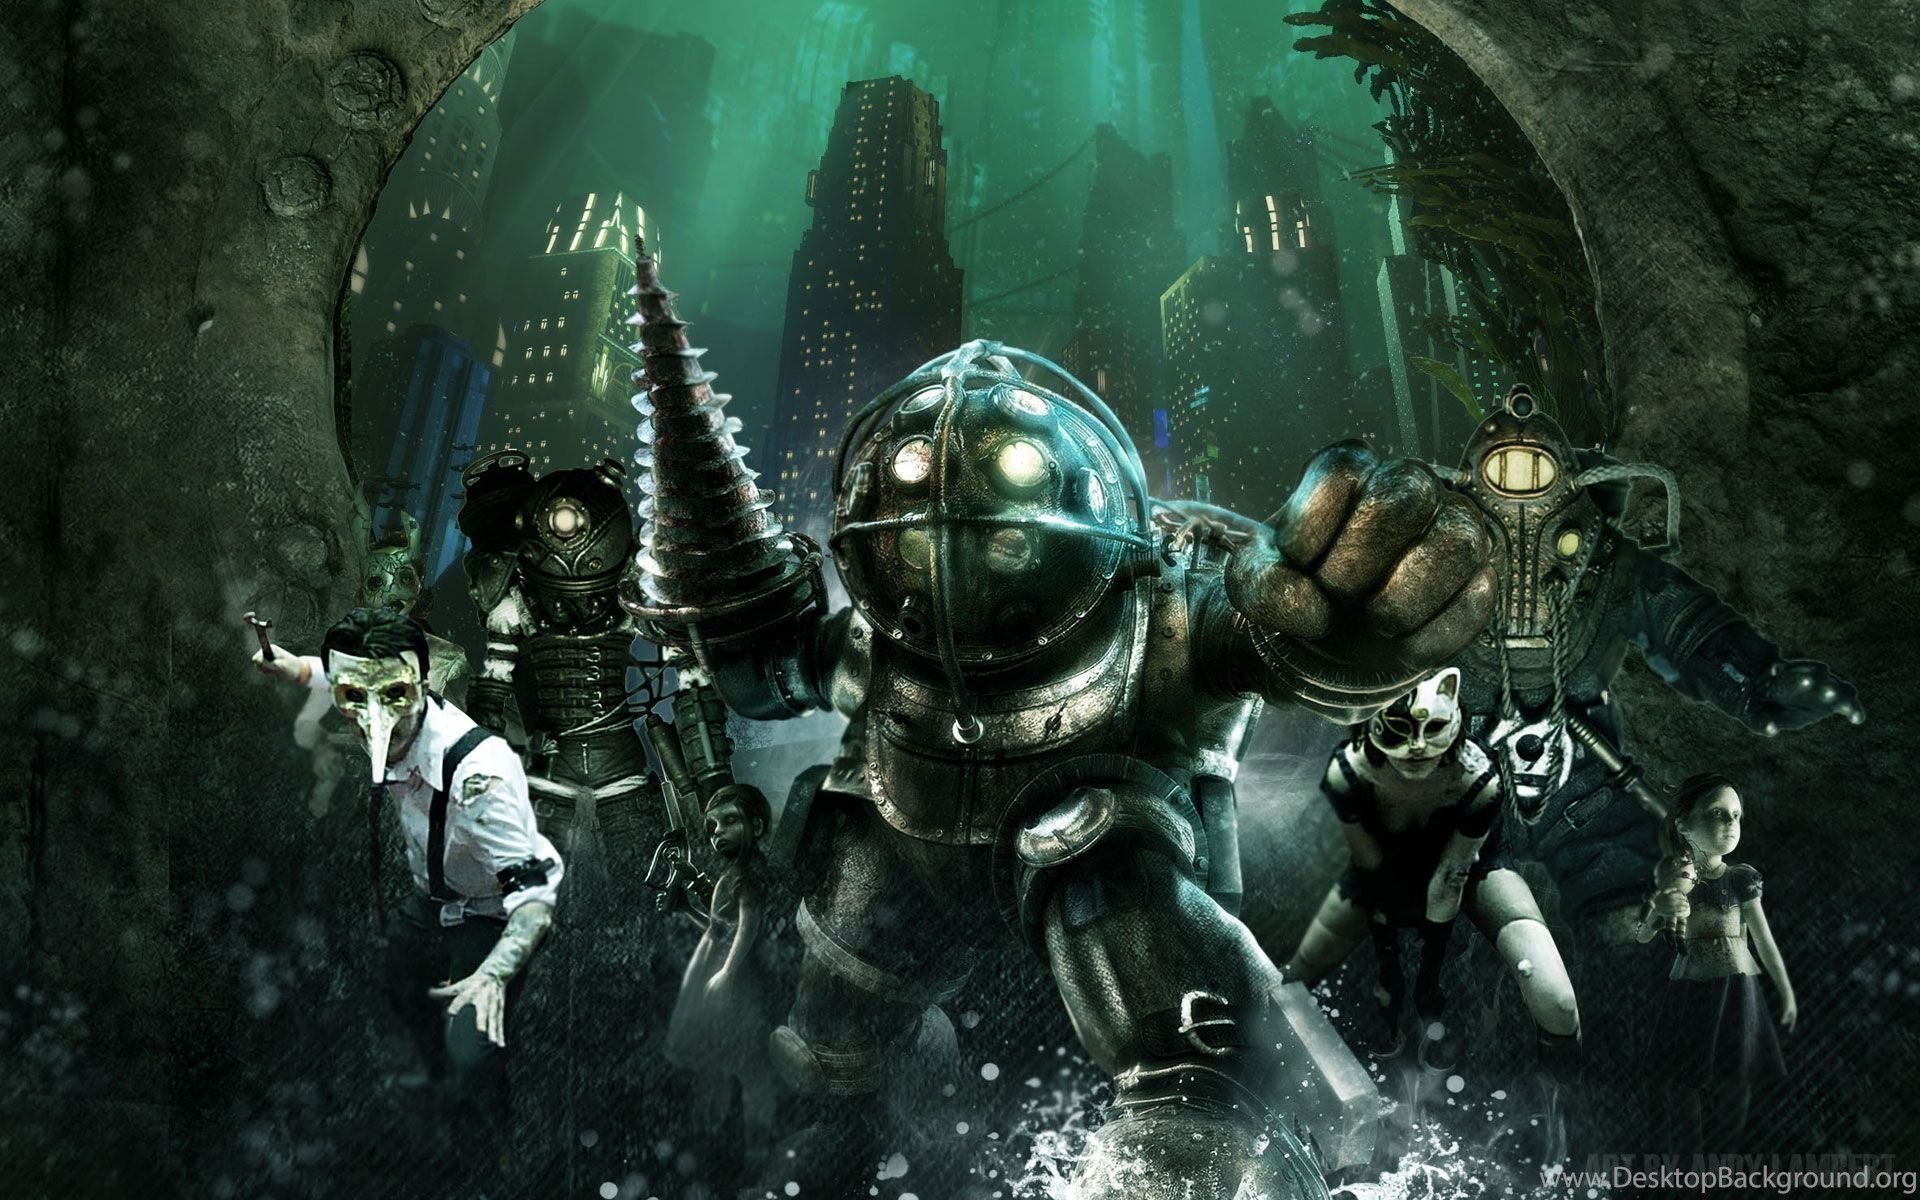 Bioshock Wallpapers Desktop Background